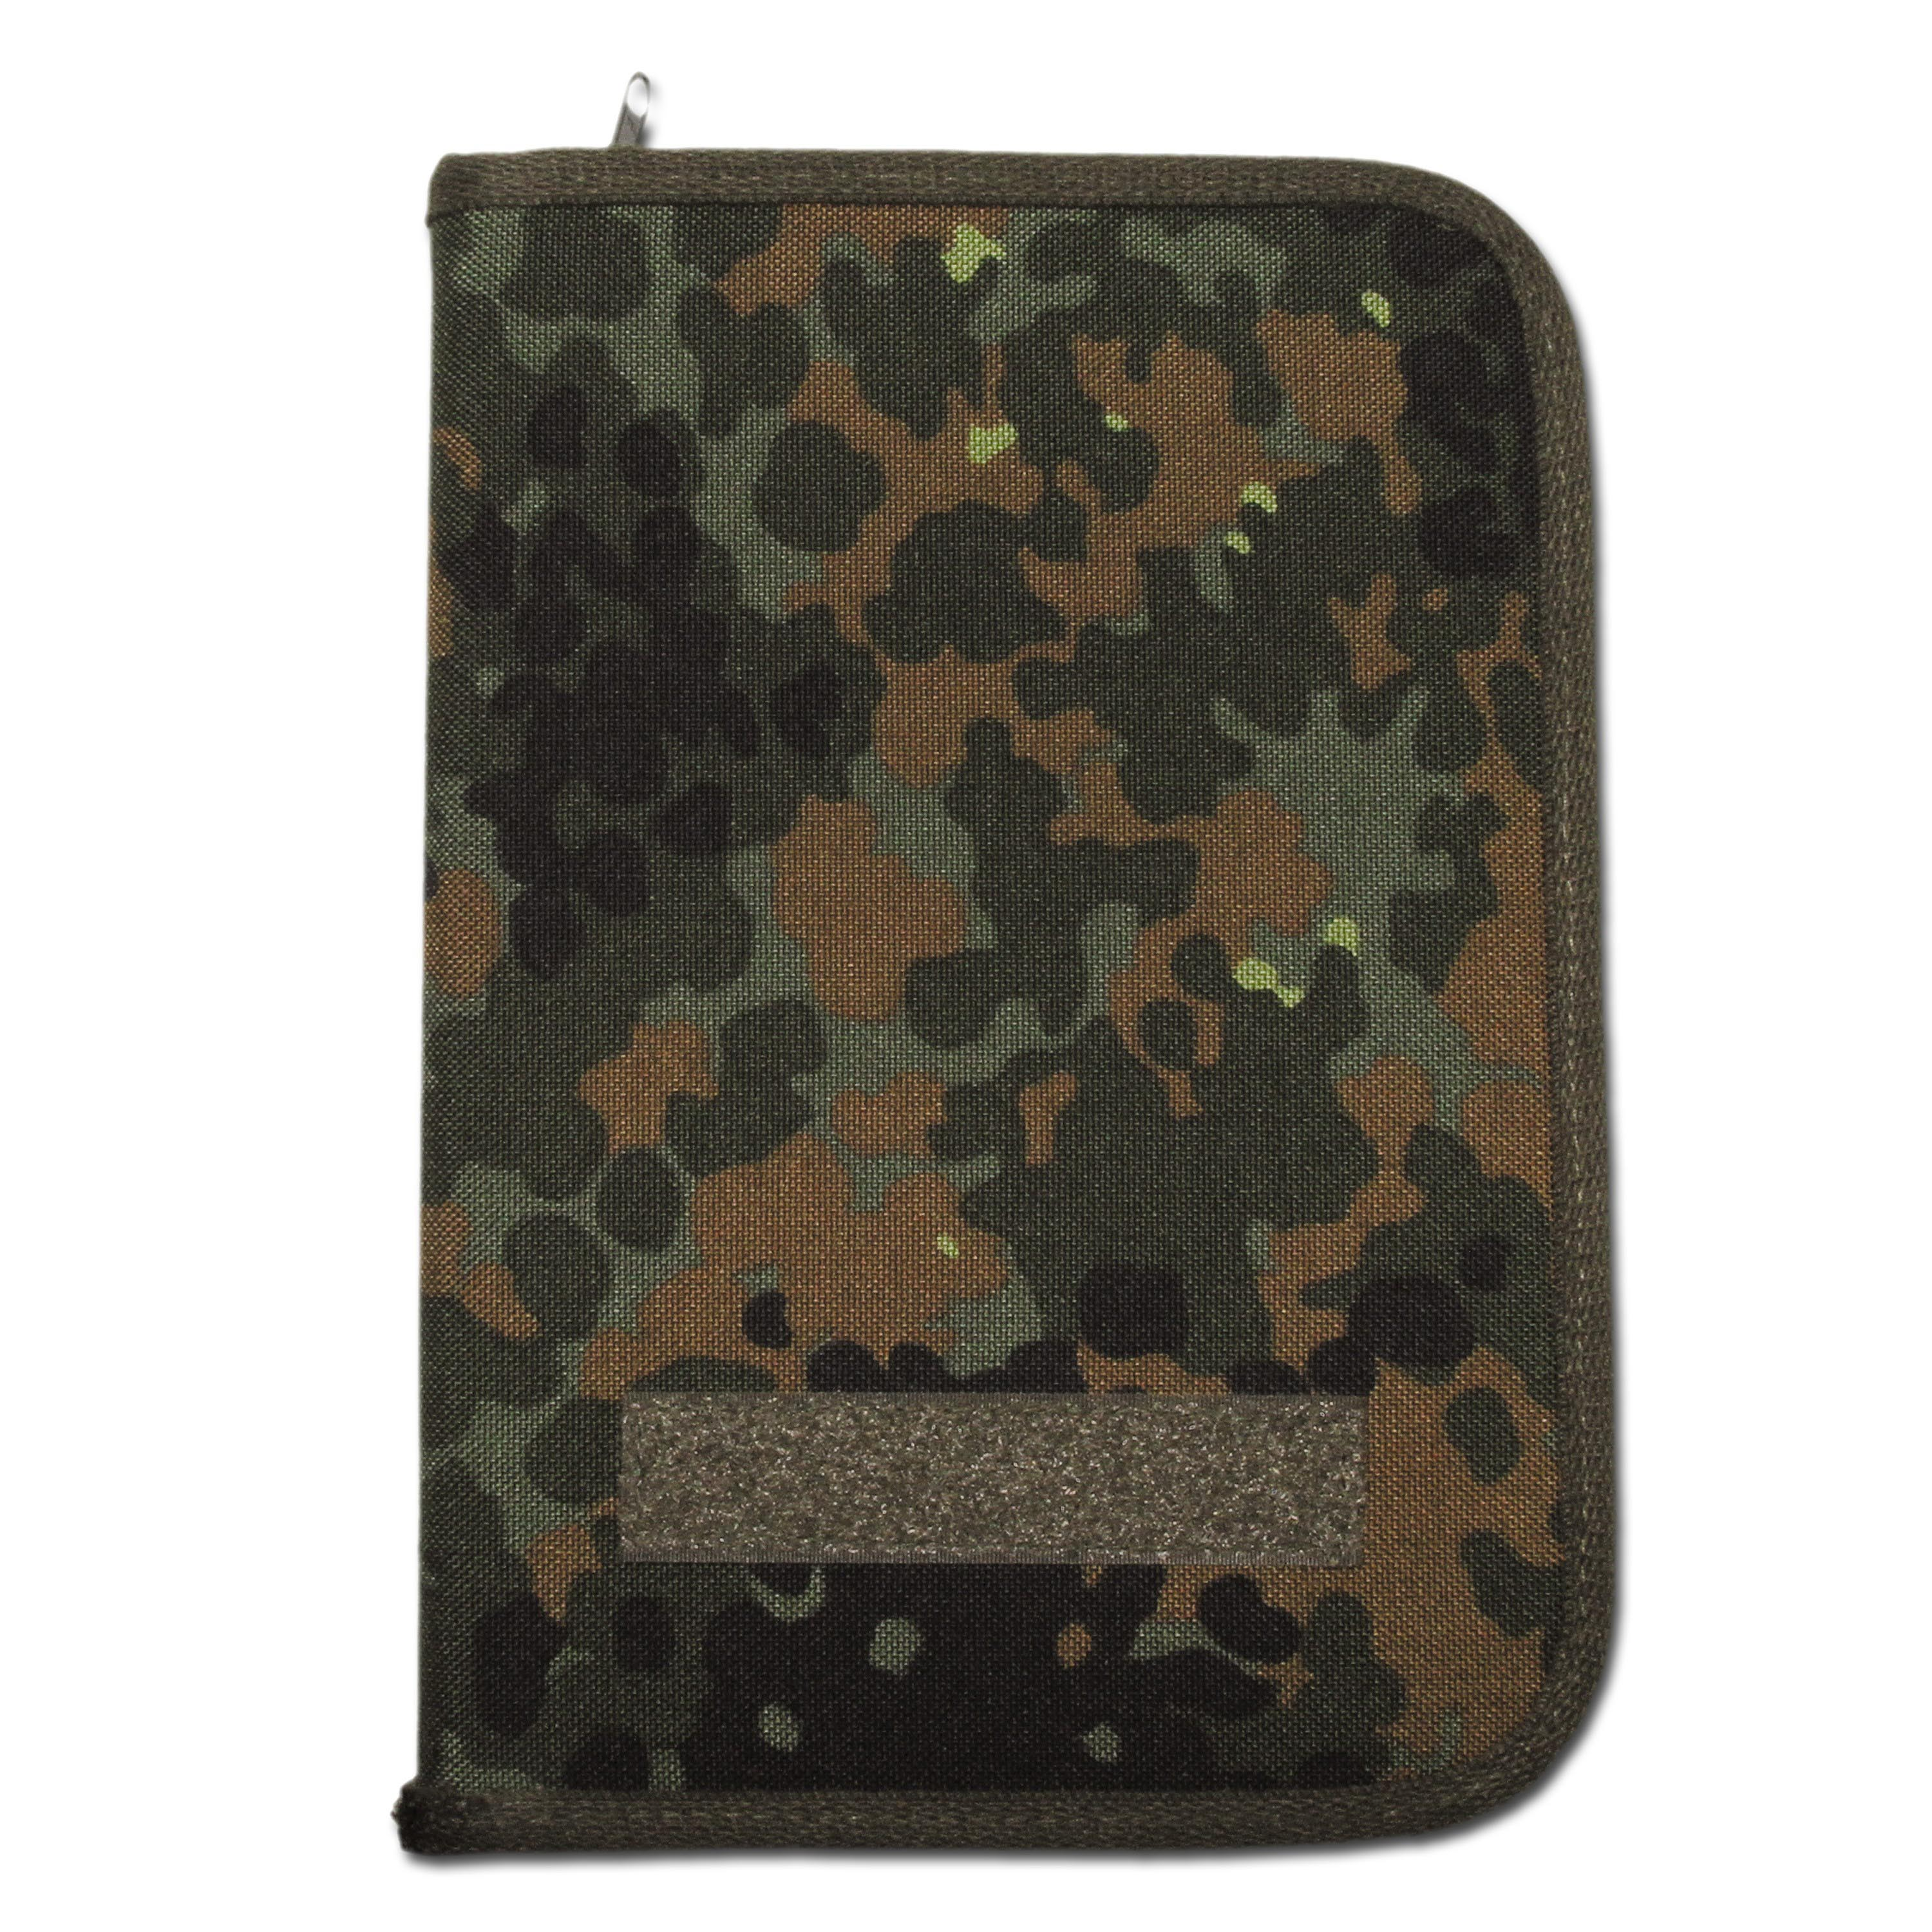 Porte-documents DIN-A5 flecktarn Cordura